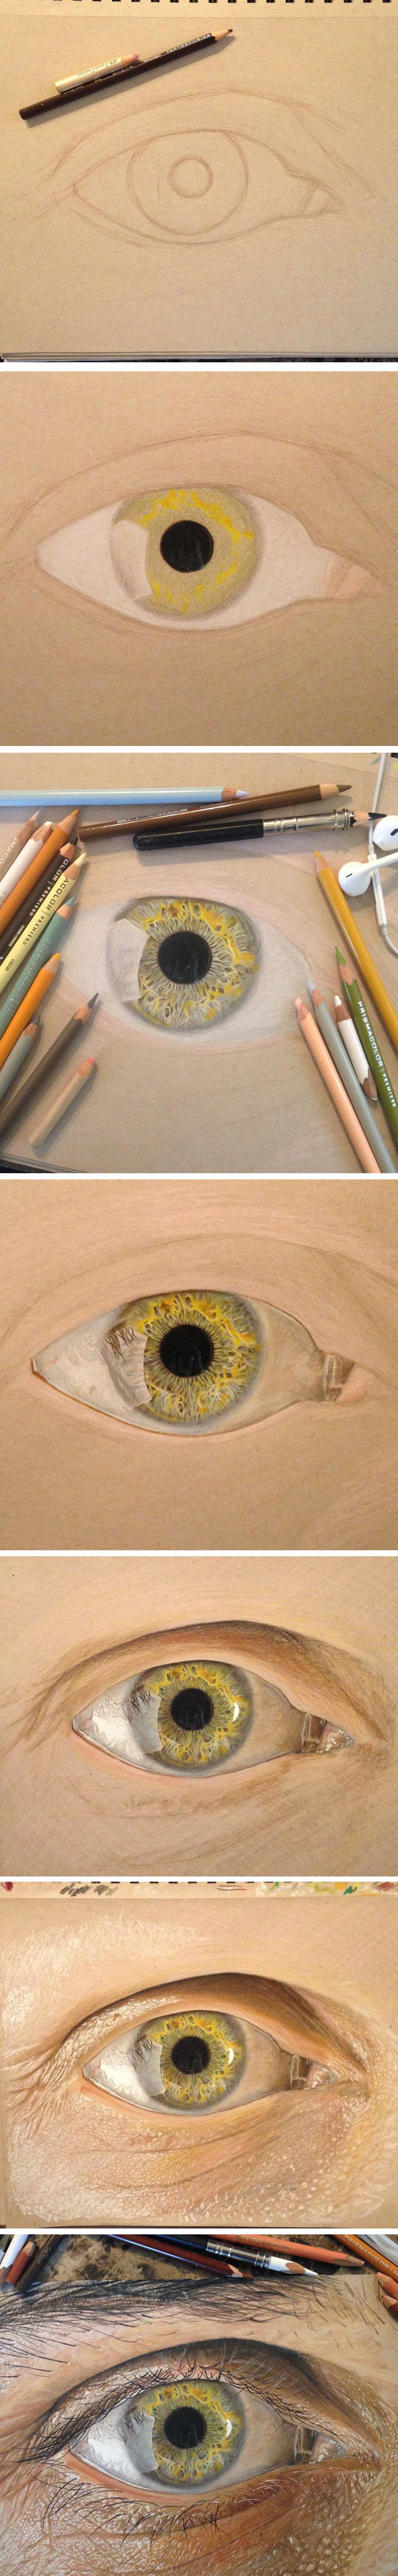 Just A Drawing Of An Eye